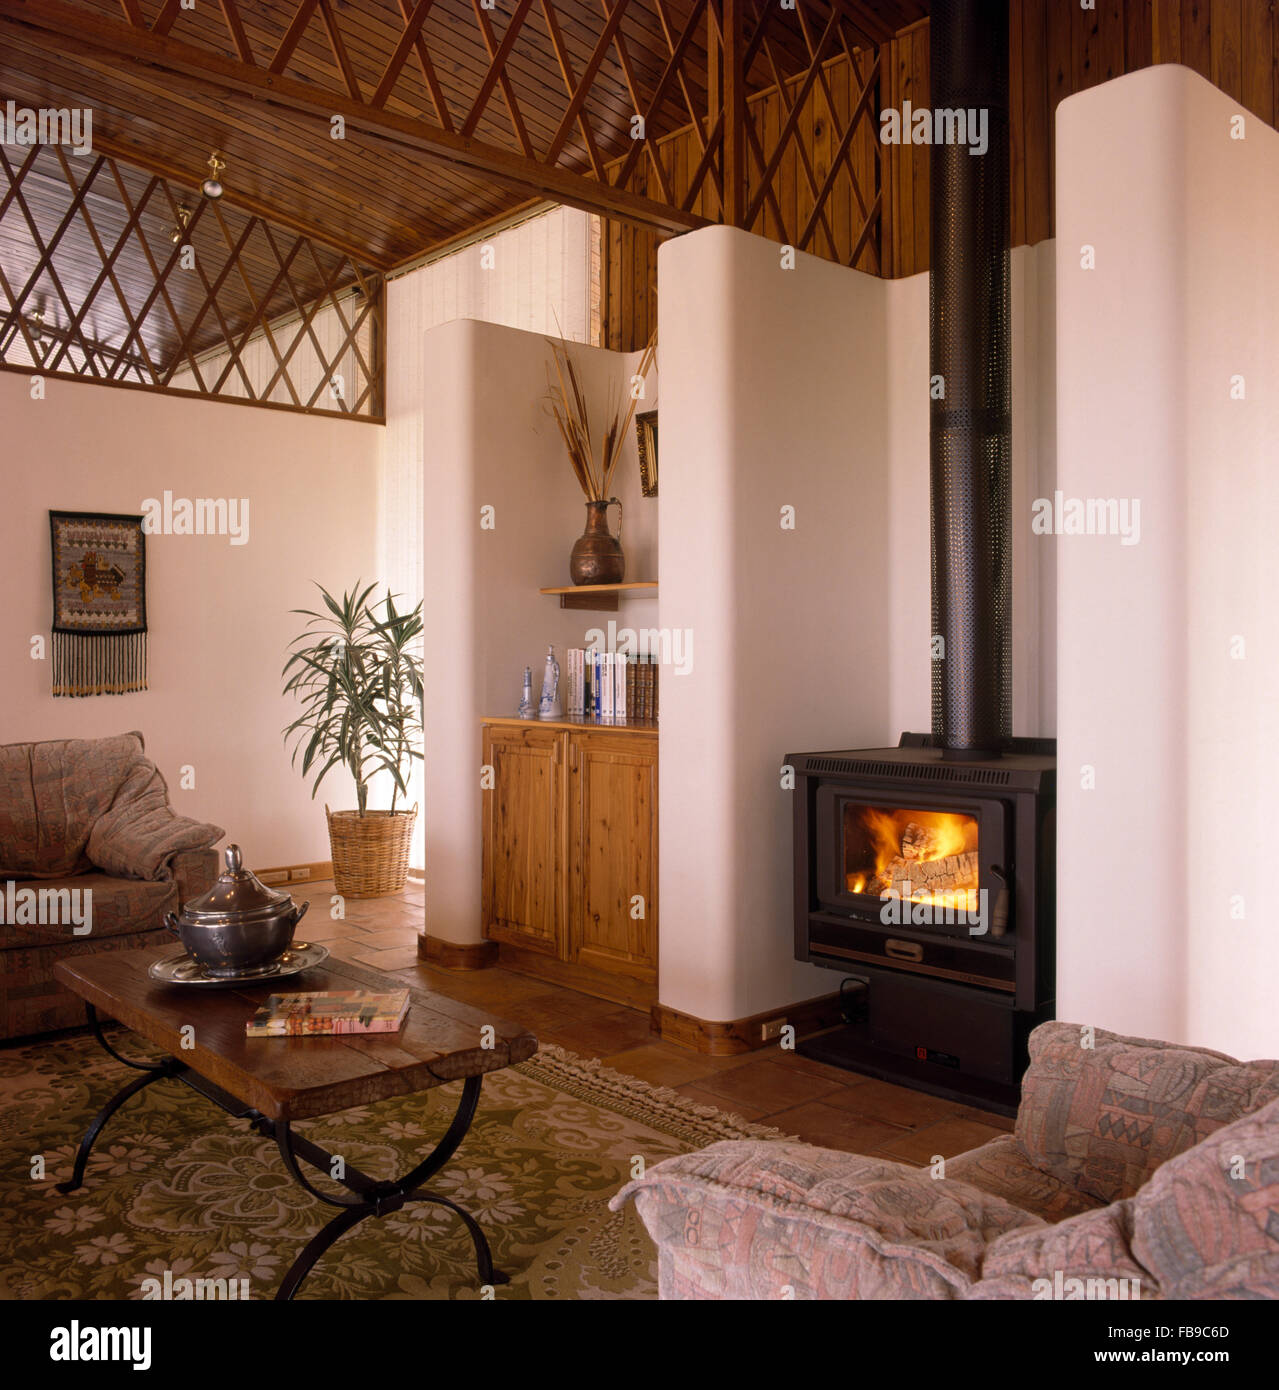 Wood Burning Stove In Living Room With Open Wooden Fretwork Panel On Stock Photo Royalty Free